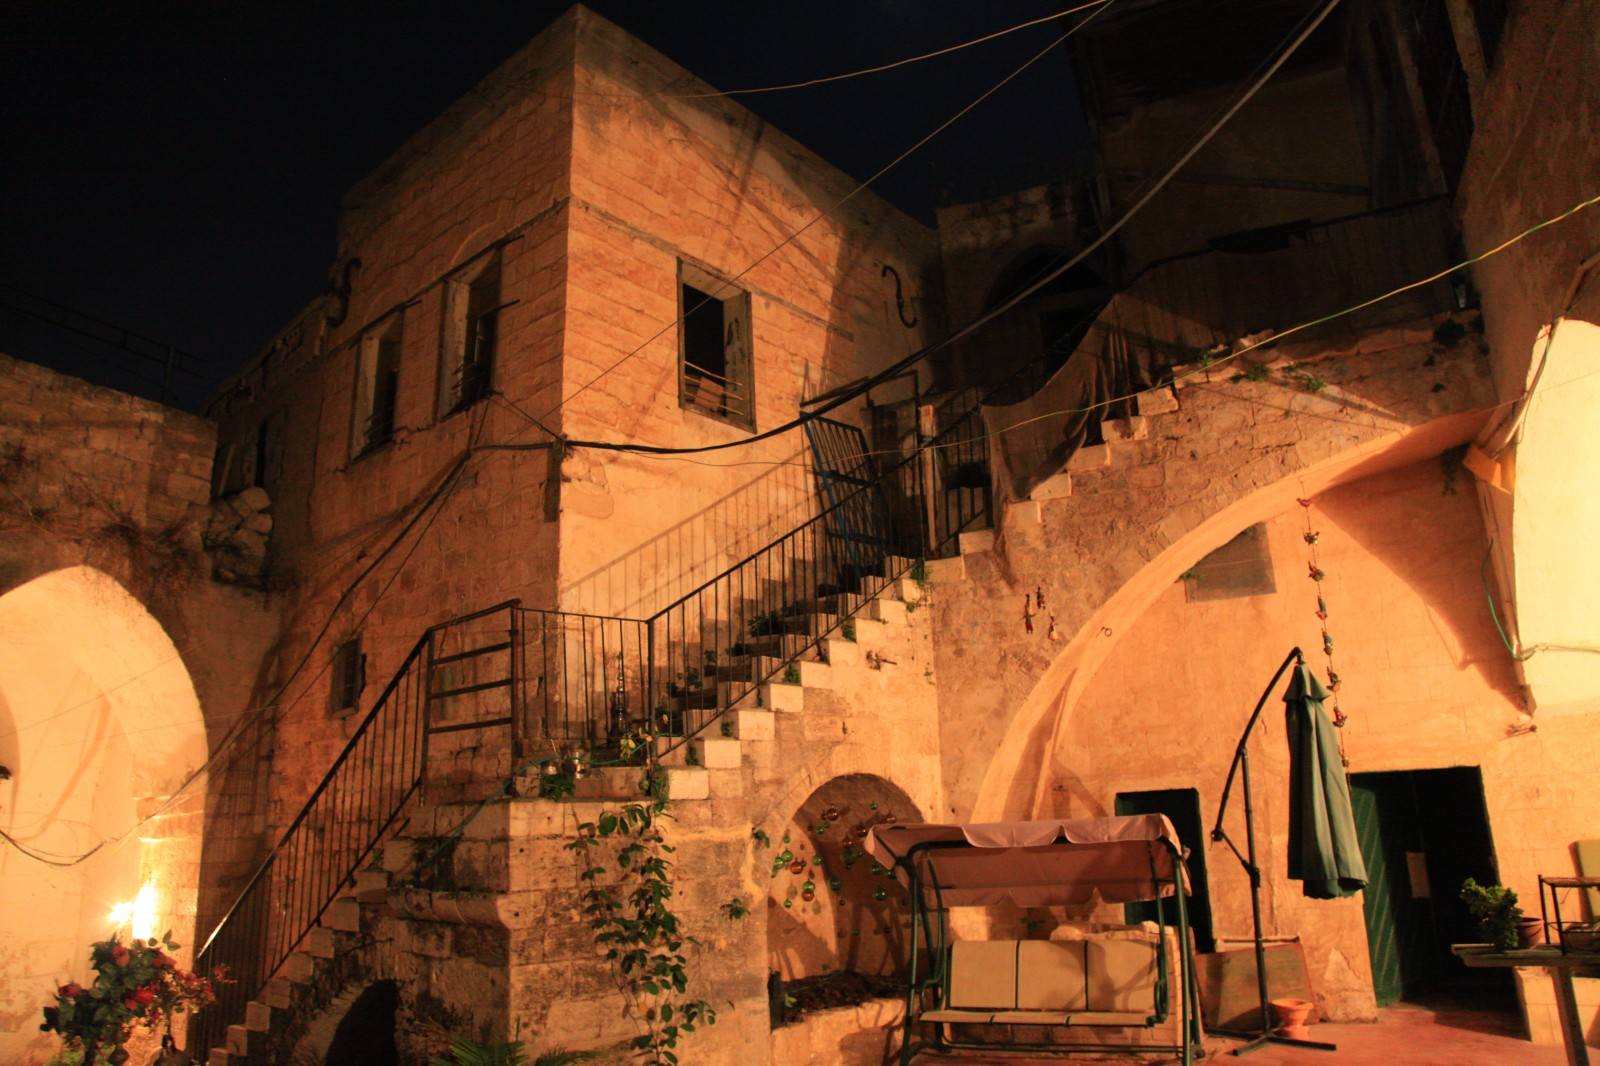 A hostel in an ancient building in Nazareth